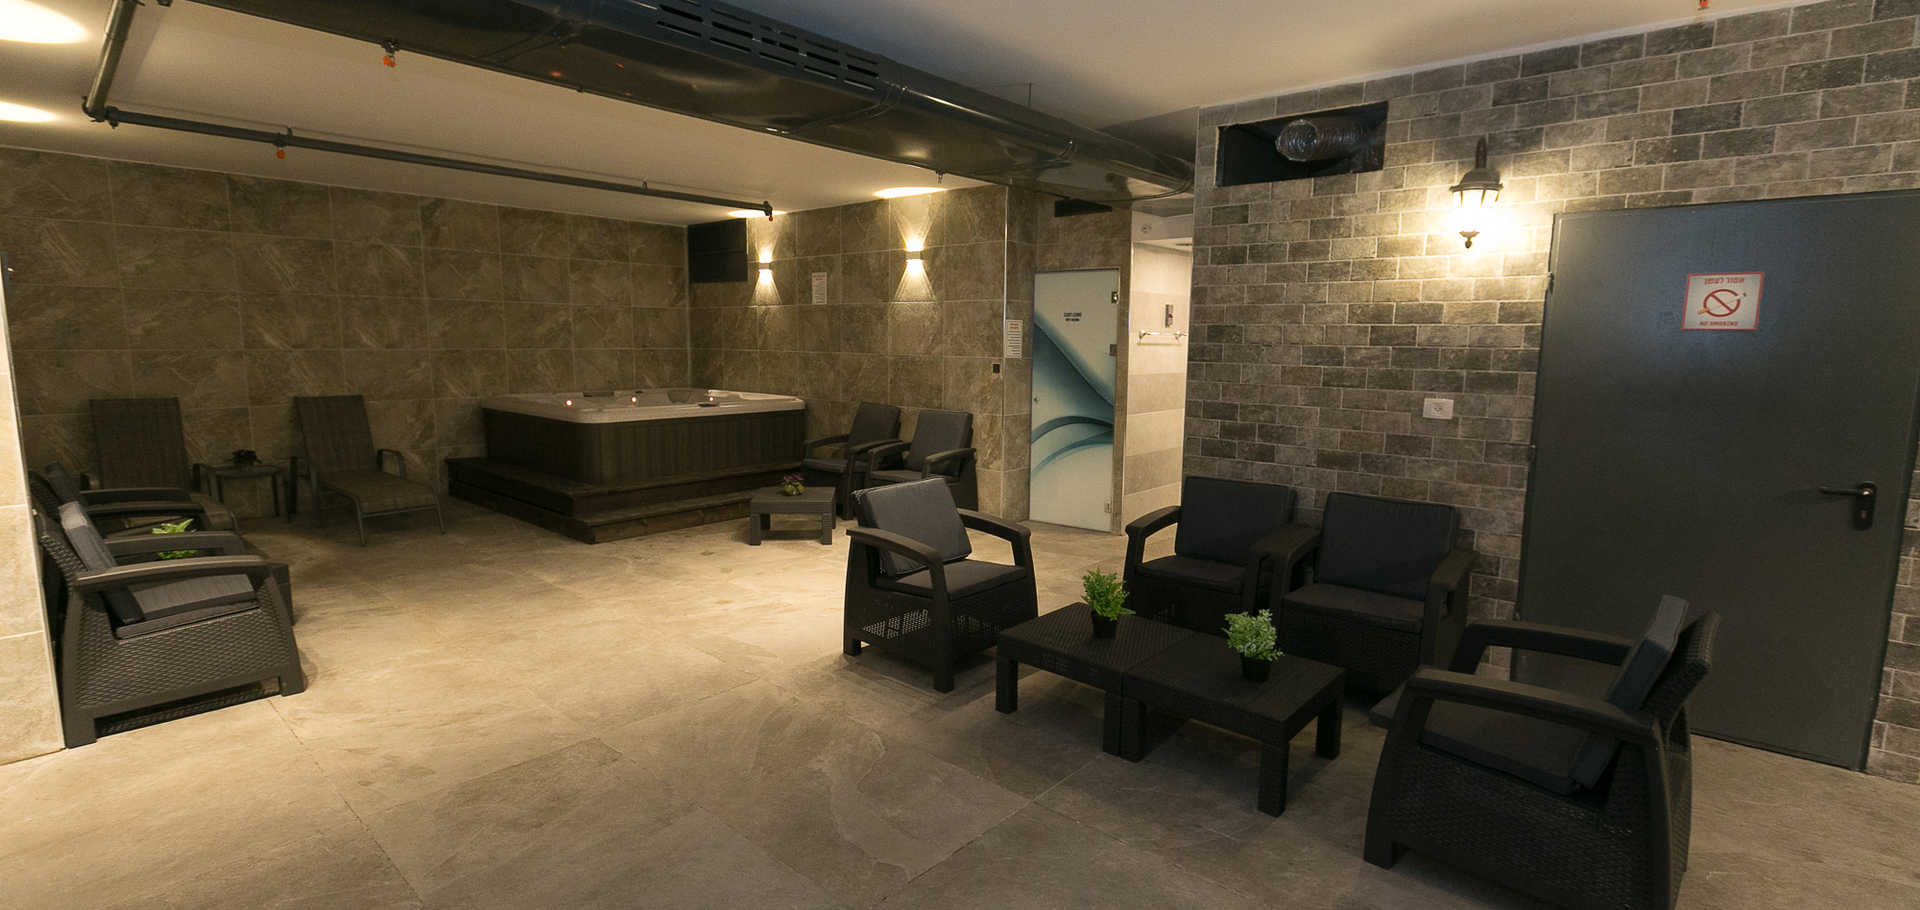 The spa area and wet sauna